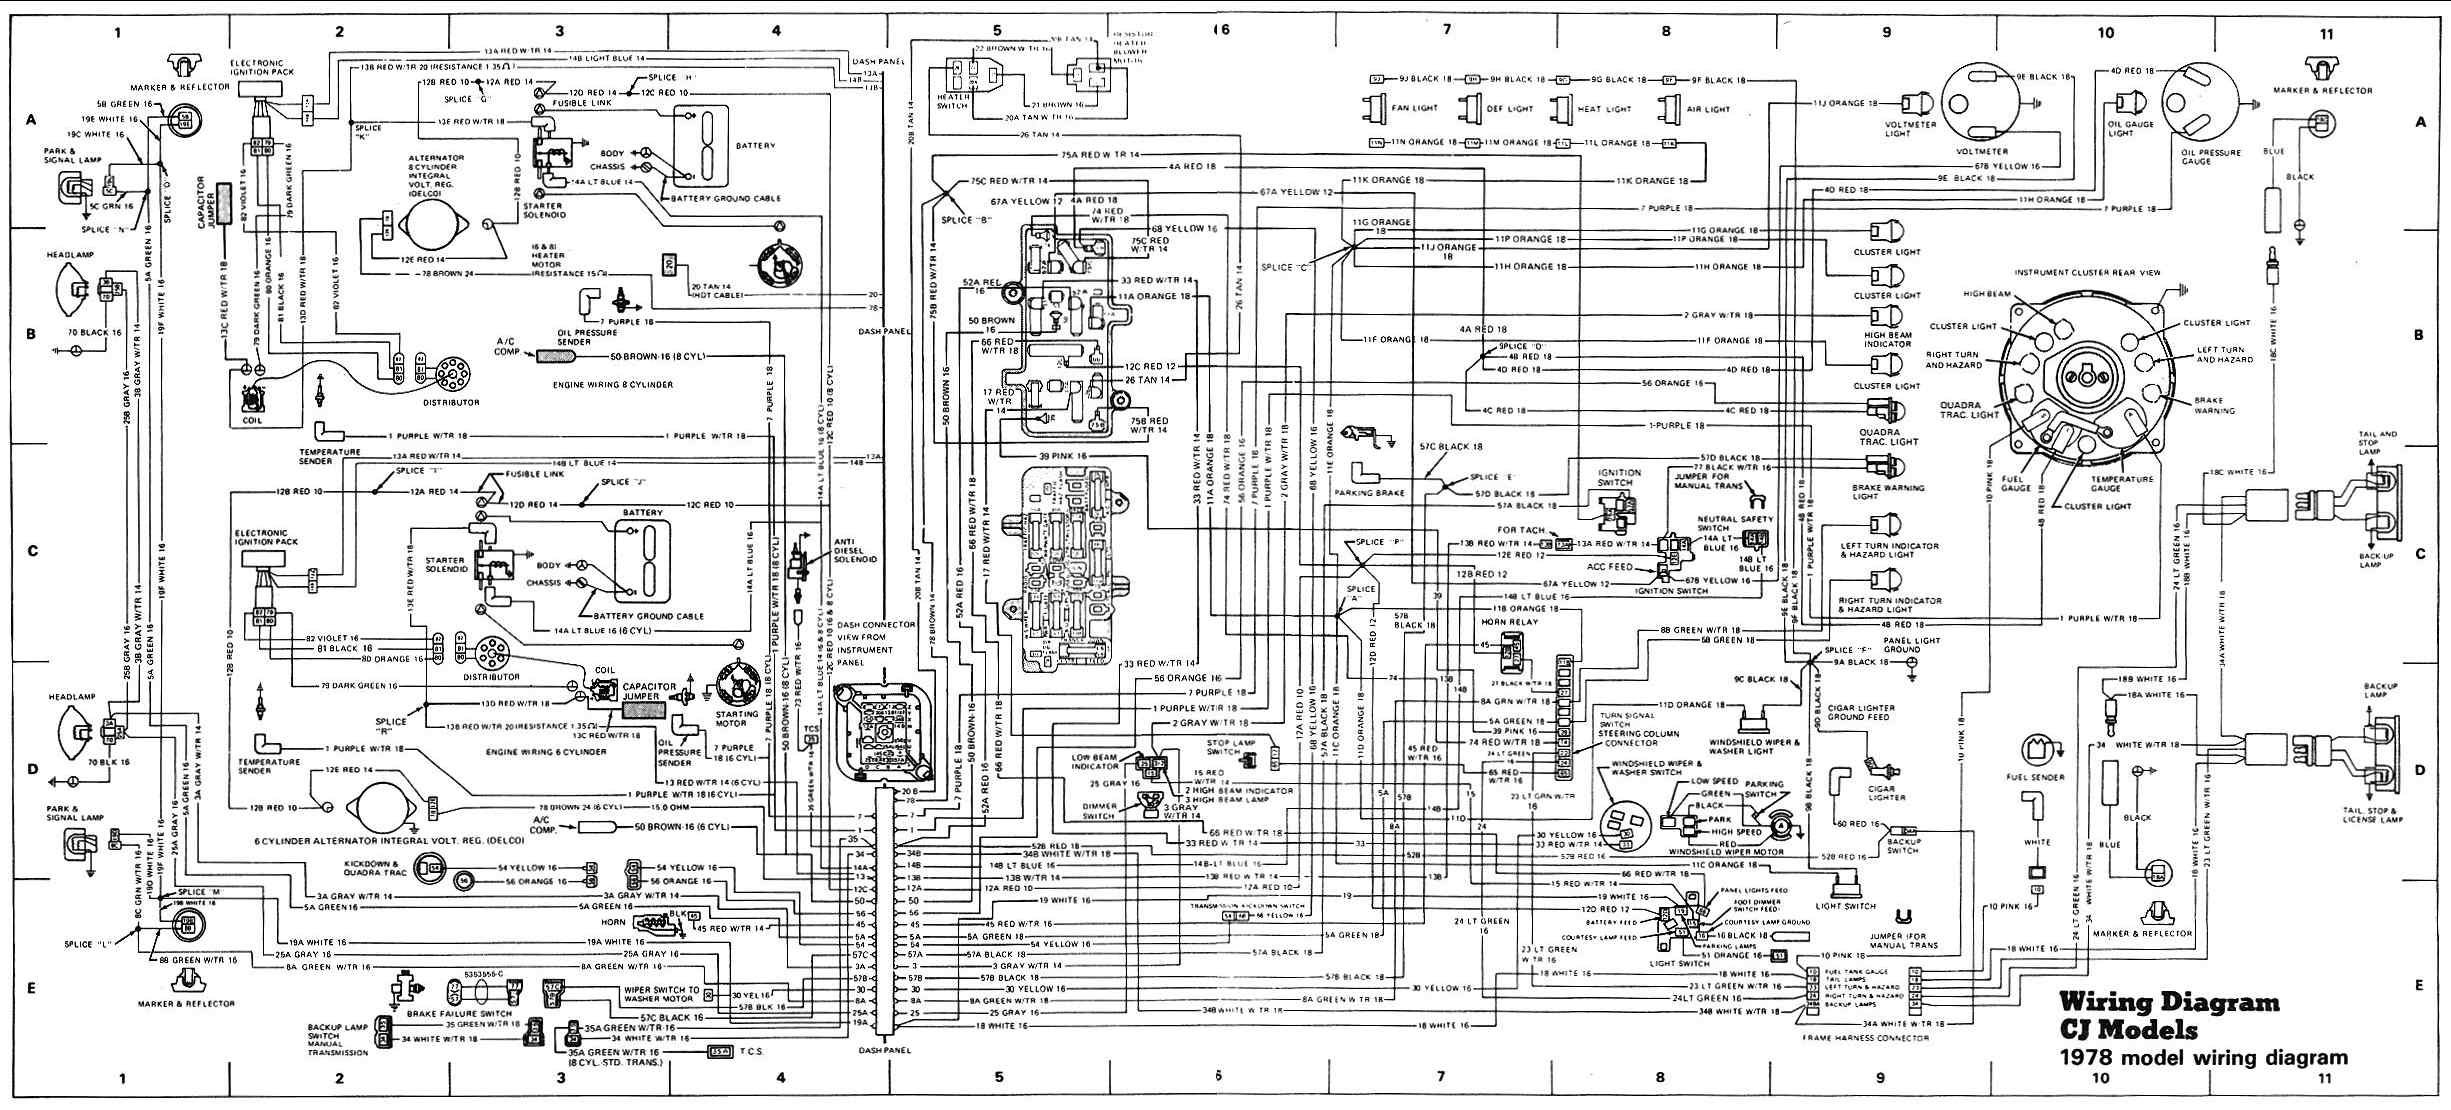 wiring diagram of 1978 jeep cj models?t=1508490323 jeep car manuals, wiring diagrams pdf & fault codes saab 93 wiring diagram download at n-0.co